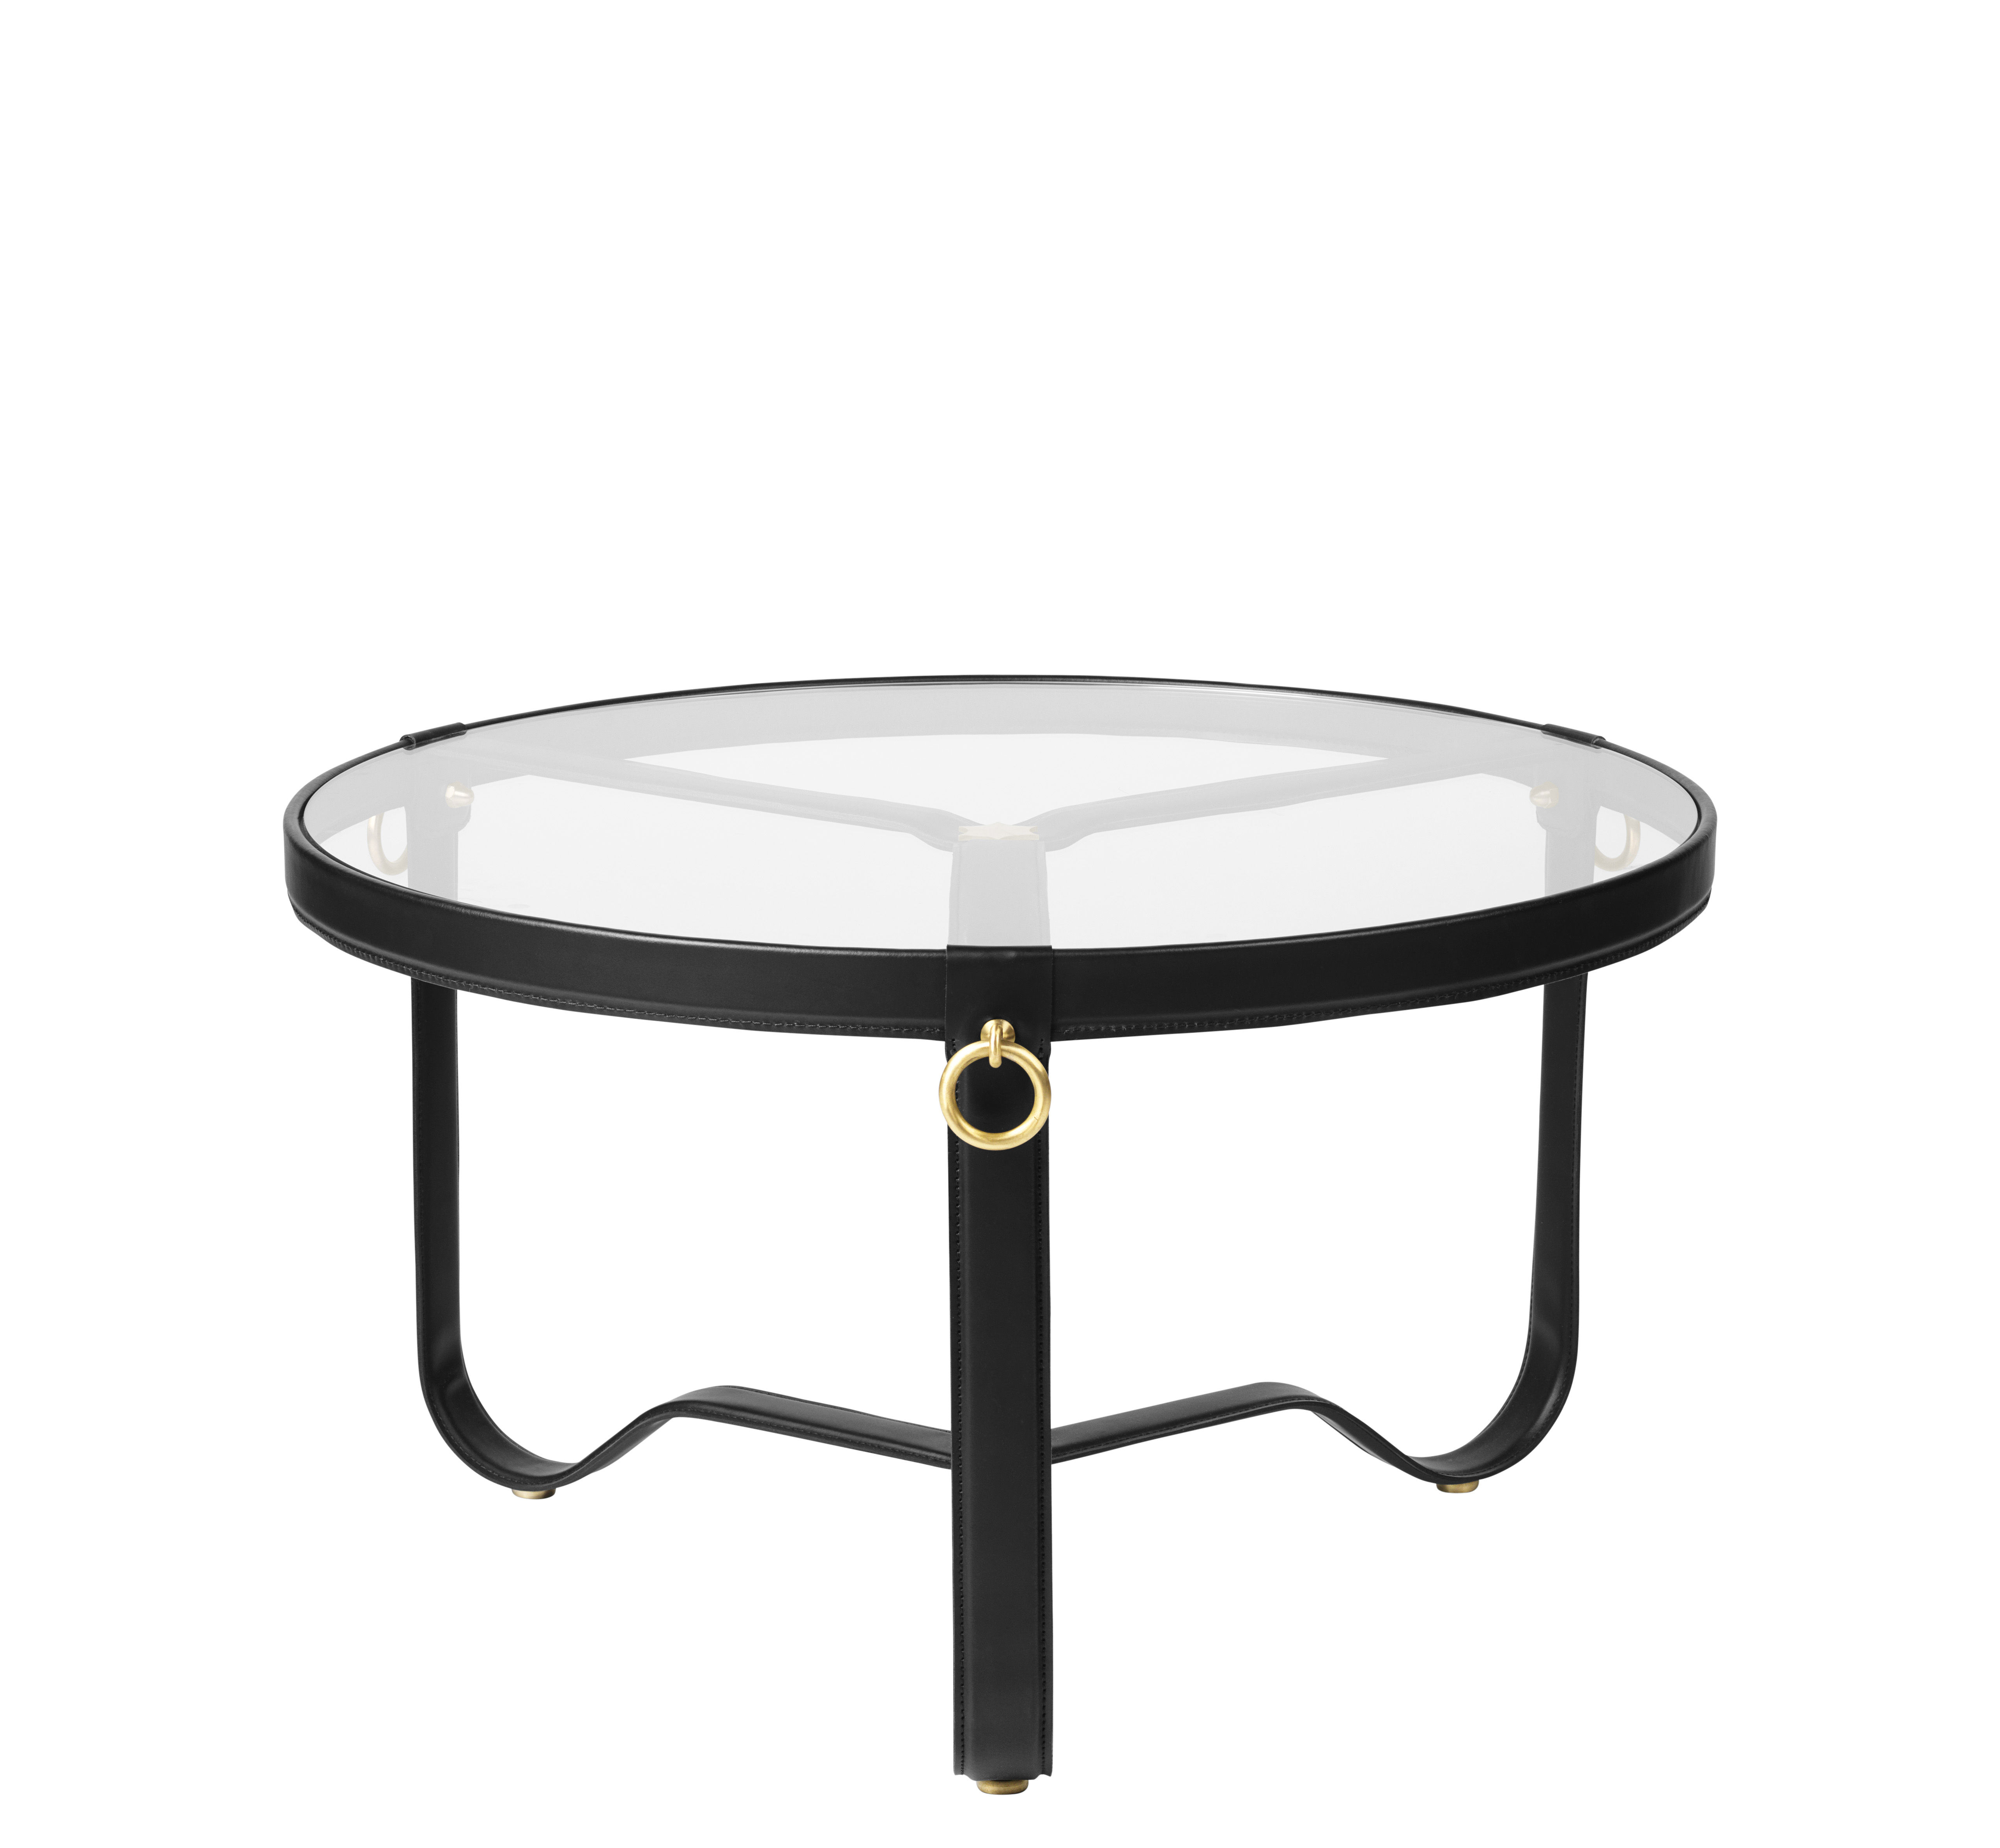 Furniture - Coffee Tables - Adnet Coffee table - / Ø 70 cm - Leather & glass by Gubi - Black / Transparent - Brass, Glass, Leather, Metal